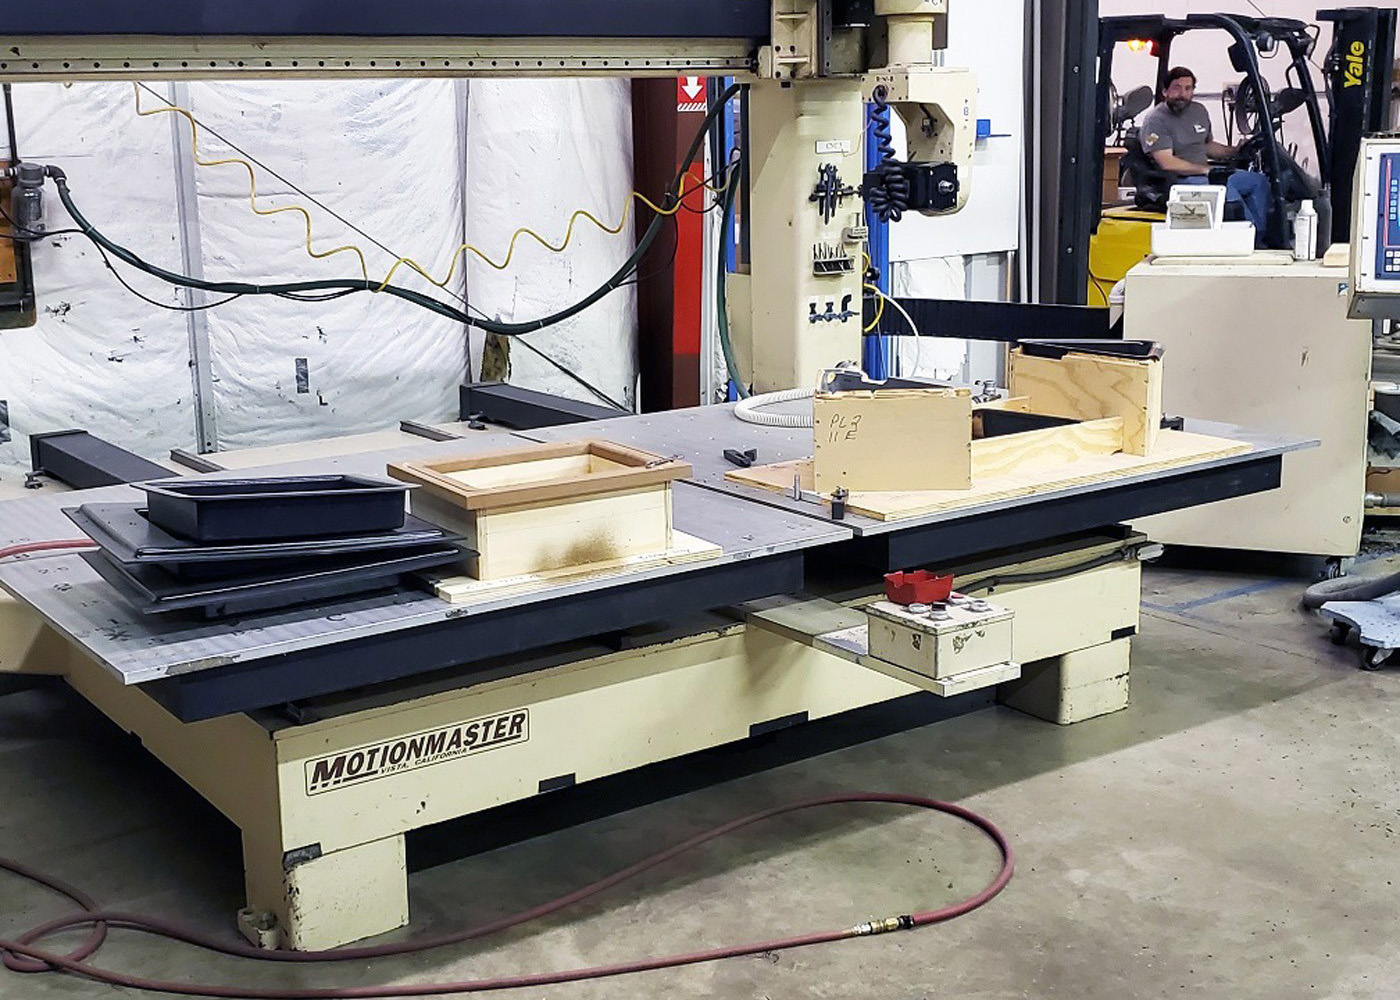 Motionmaster 5 Axis CNC Router E588